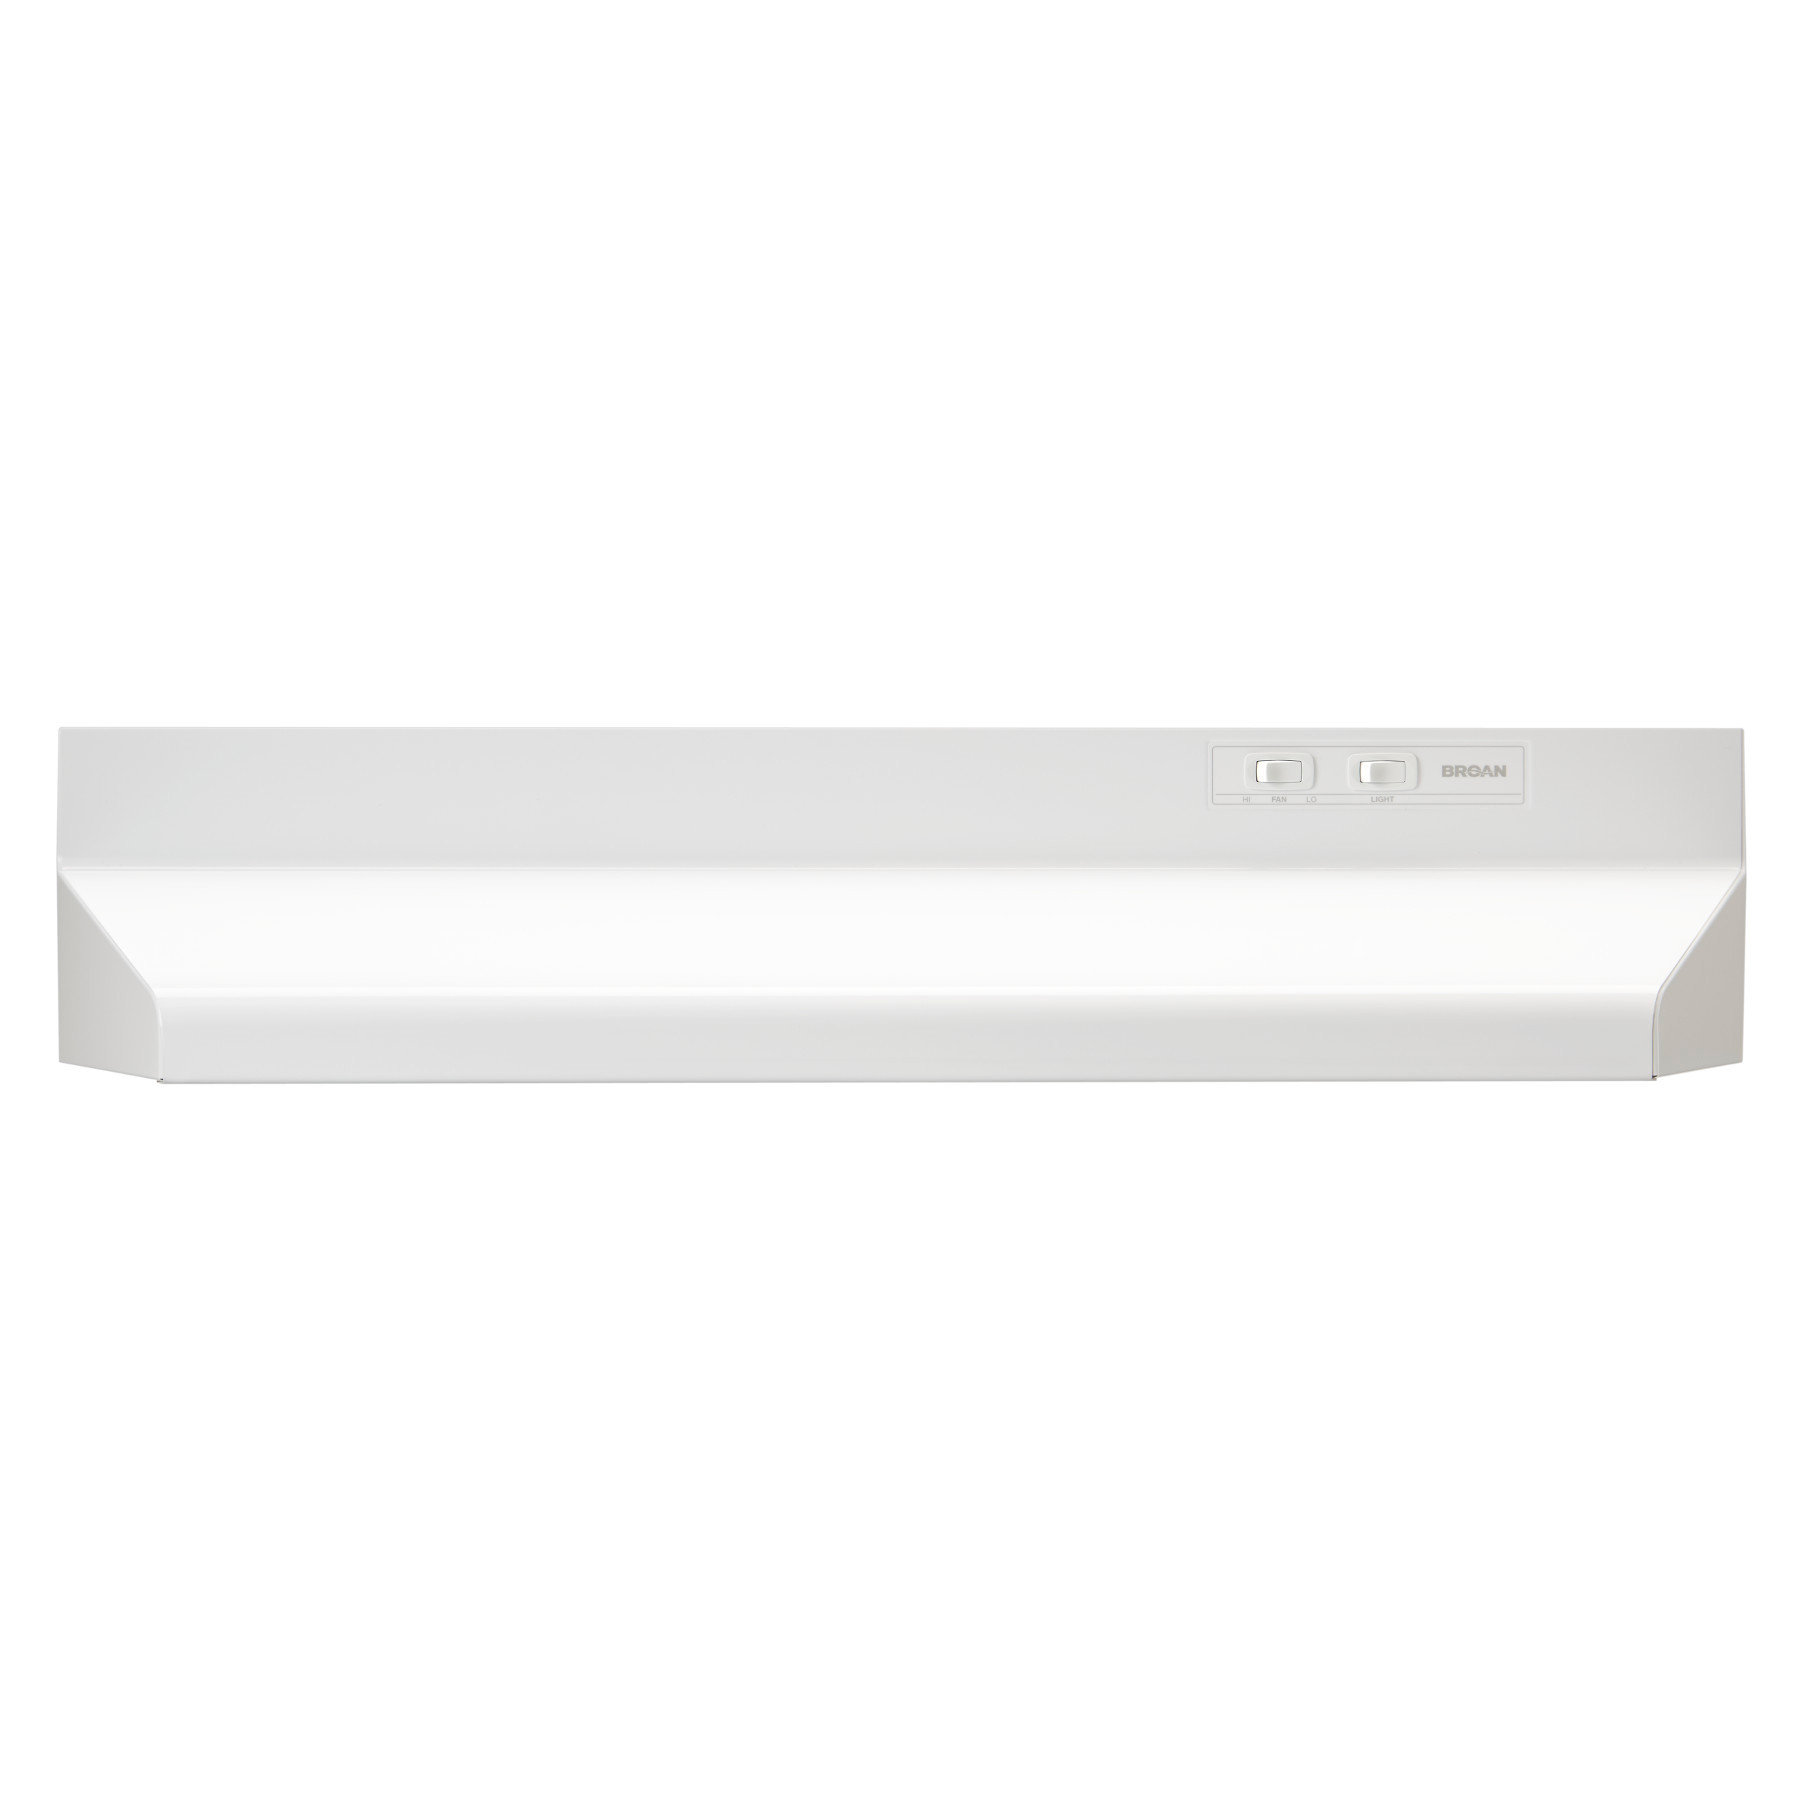 "Broan 403001 30"" Ducted Range Hood - White"